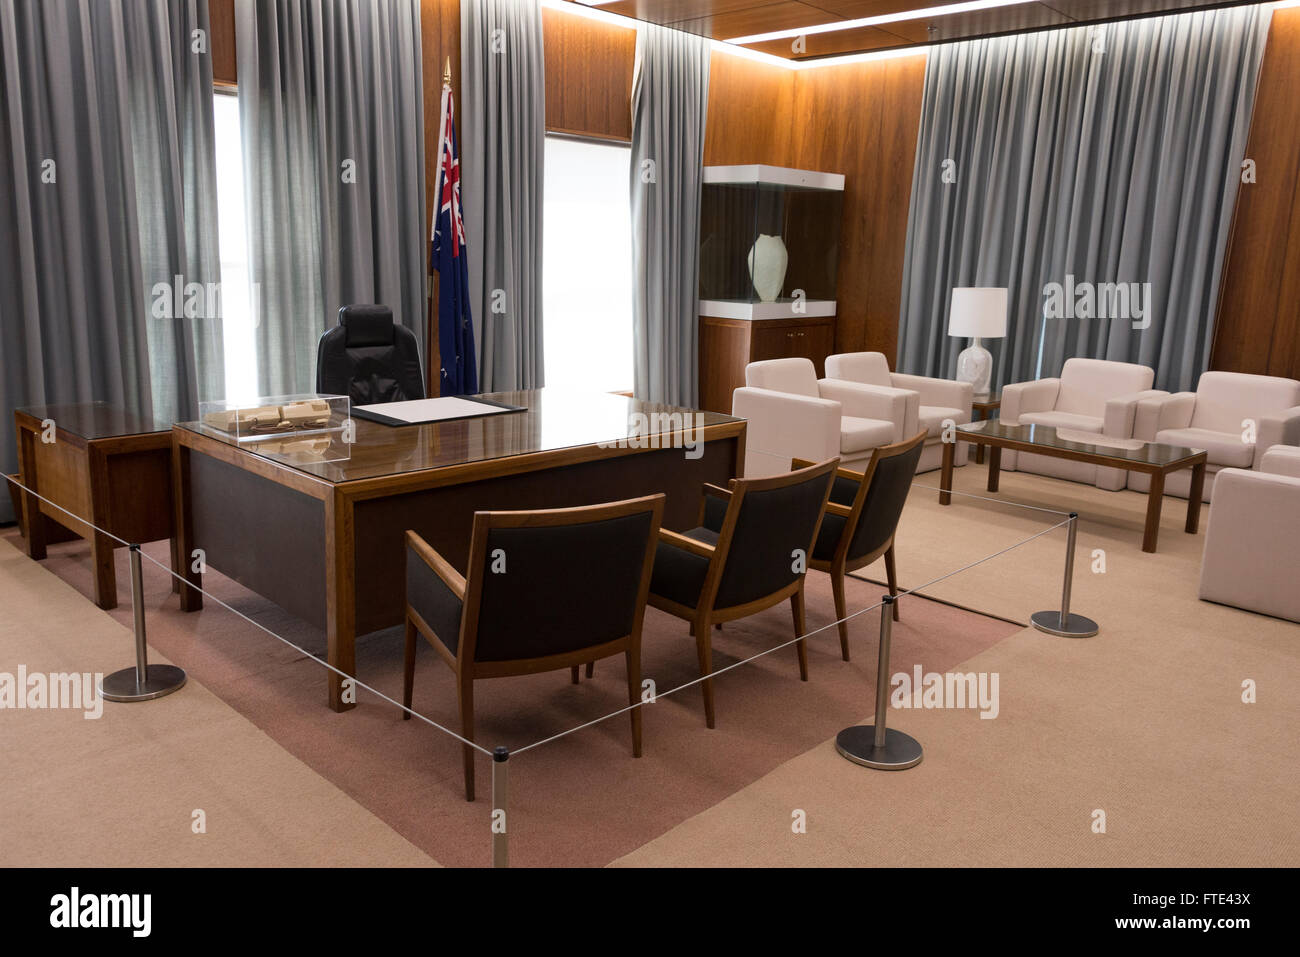 the australian prime minister 39 s office in the old parliament house stock photo royalty free. Black Bedroom Furniture Sets. Home Design Ideas